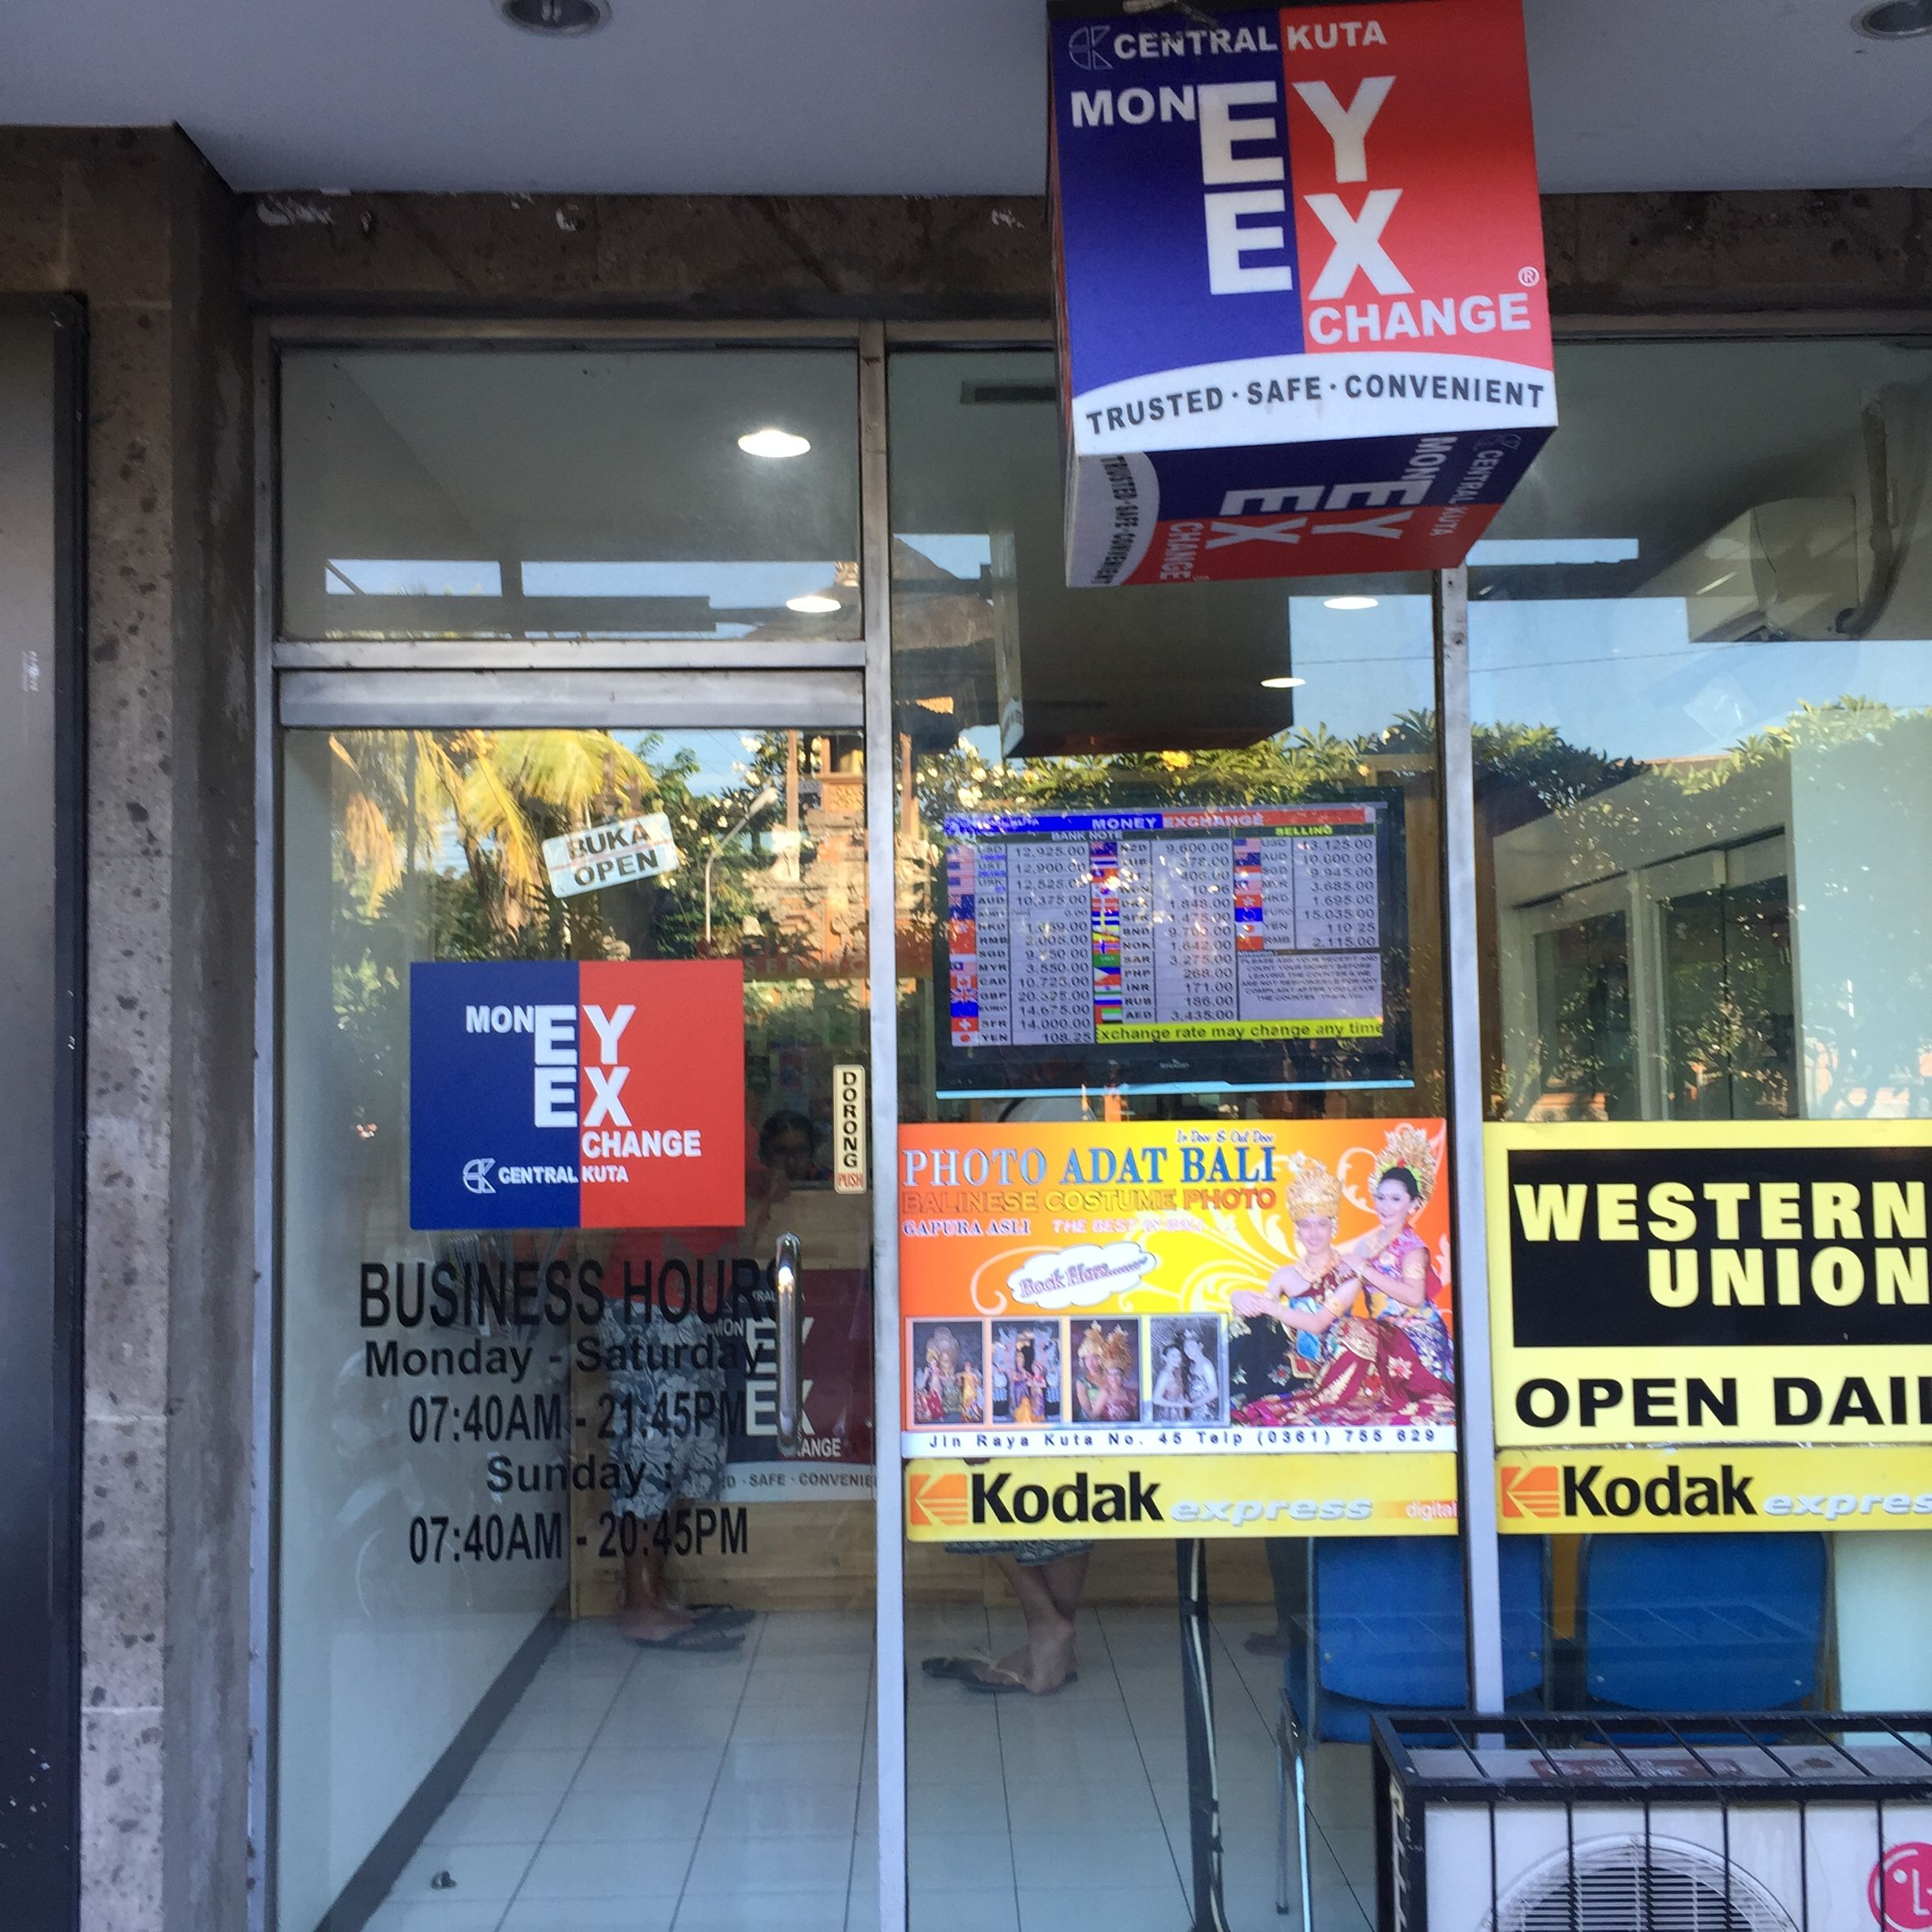 Recommend Here For Money Exchange At Pt Central Kuta